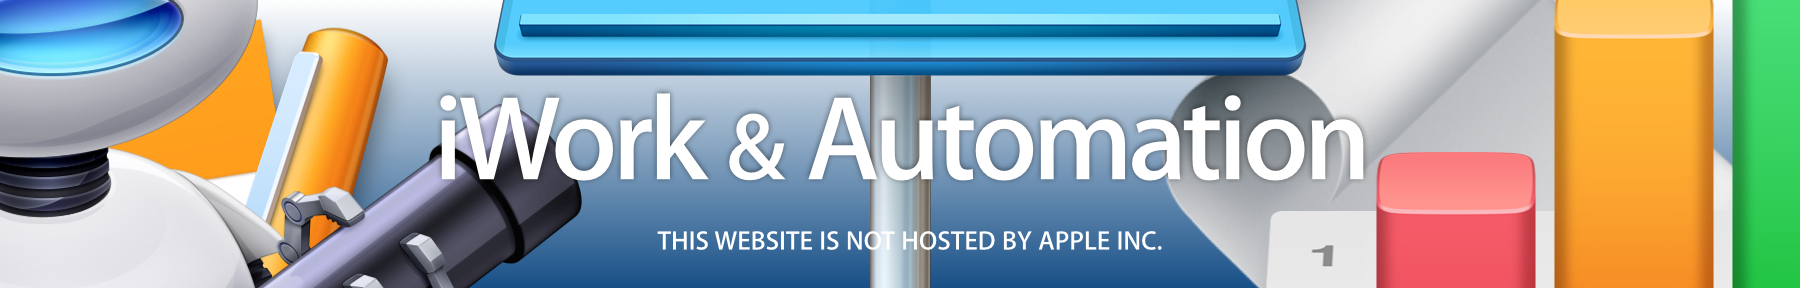 iWork-Automation-Banner